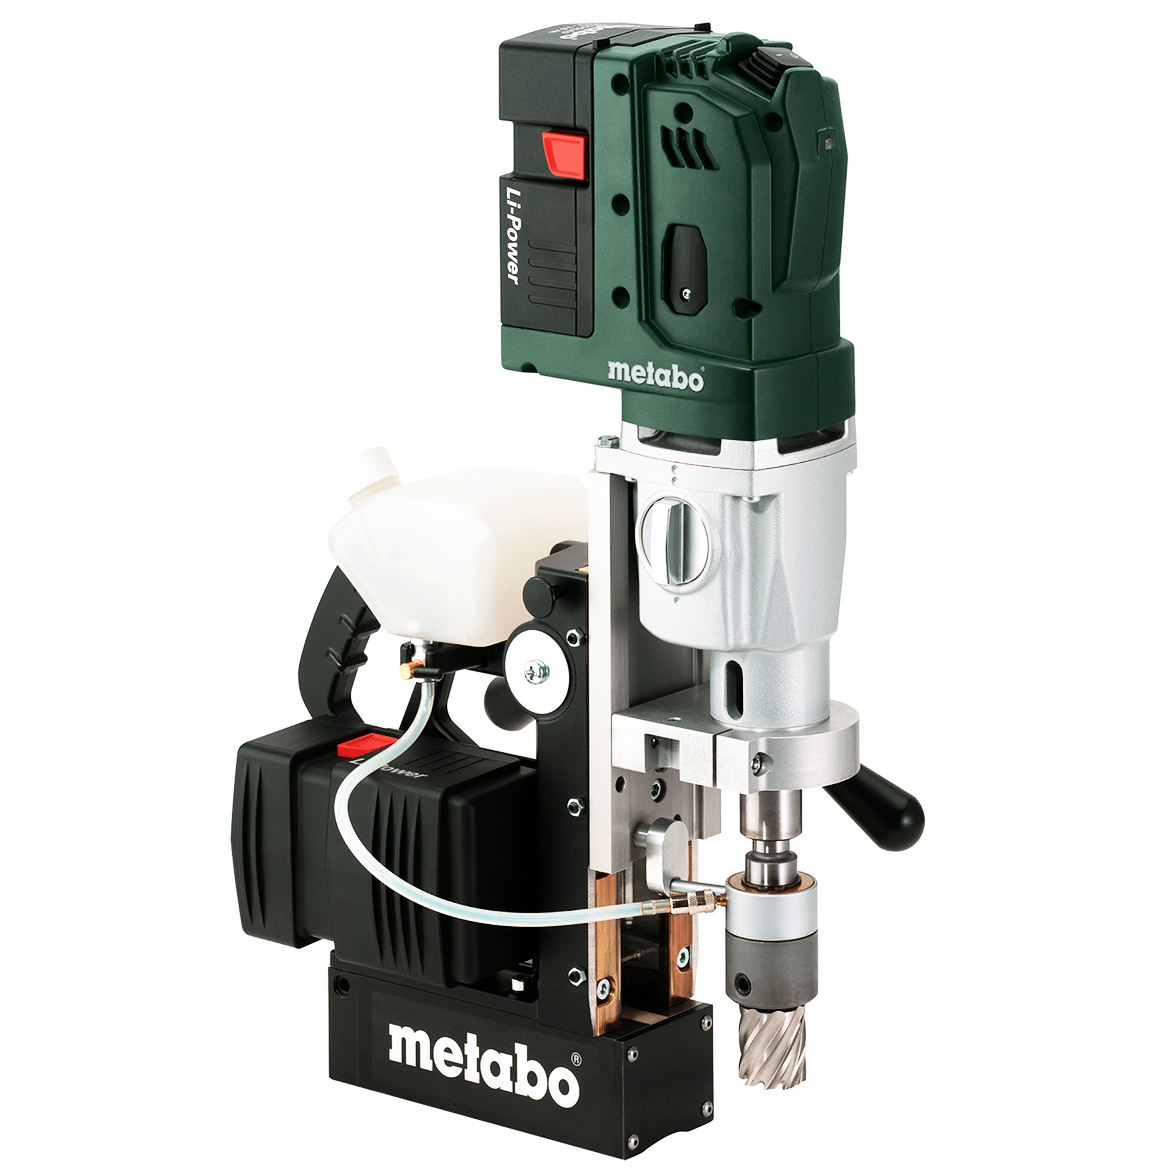 Metabo 600334520 25.2-Volt 2-Speed Cordless Adjustable Ma...